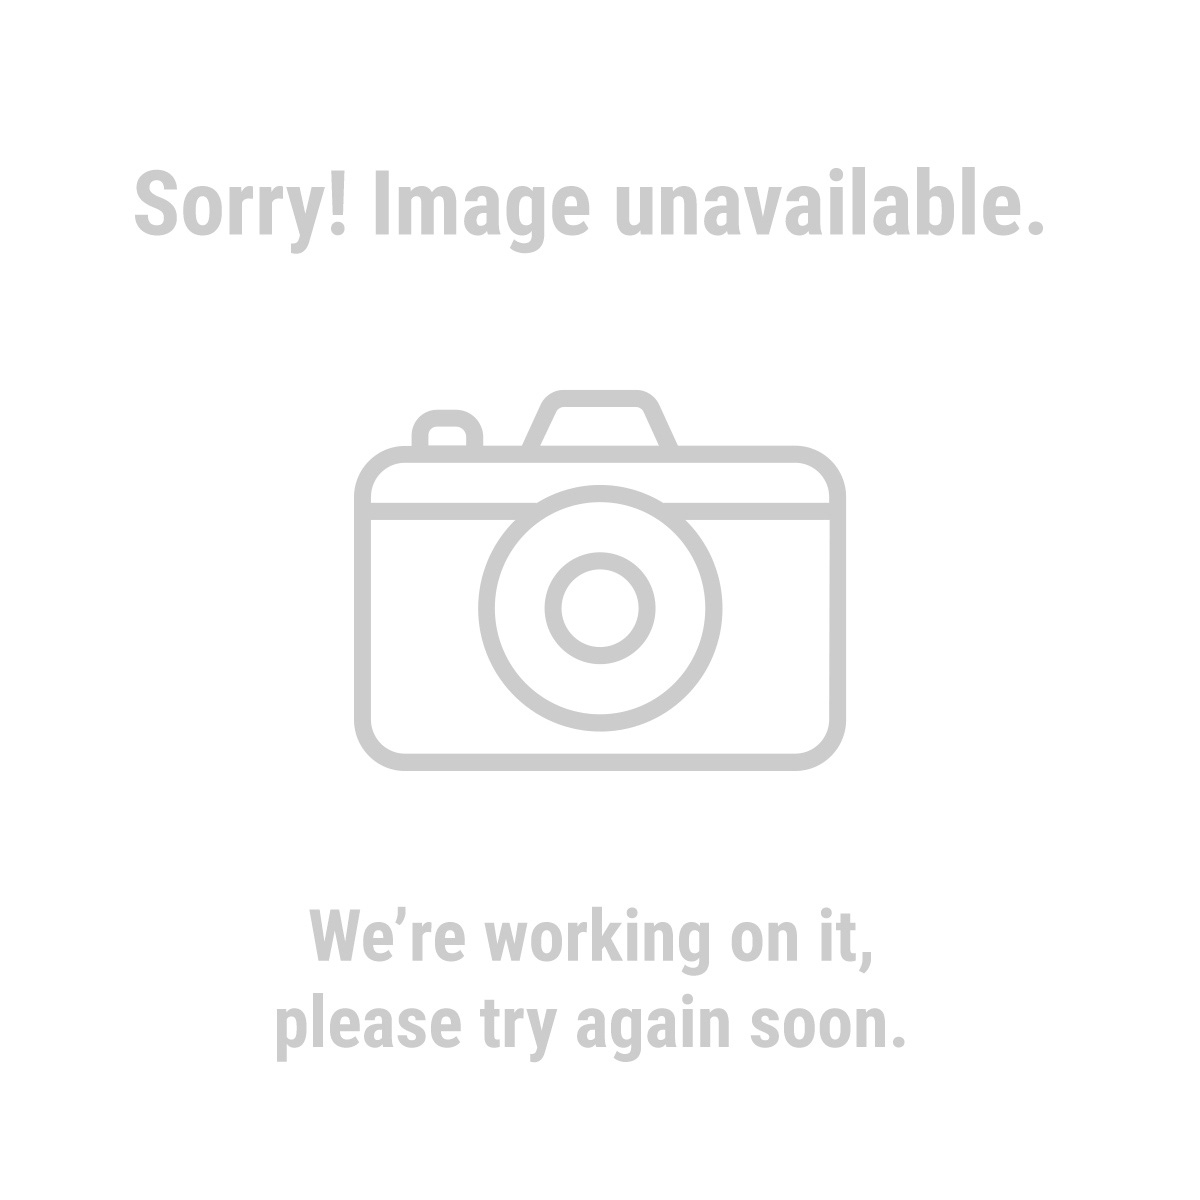 Chicago Electric Welding 63122 Auto Darkening Welding Helmet with Blue Flame Design